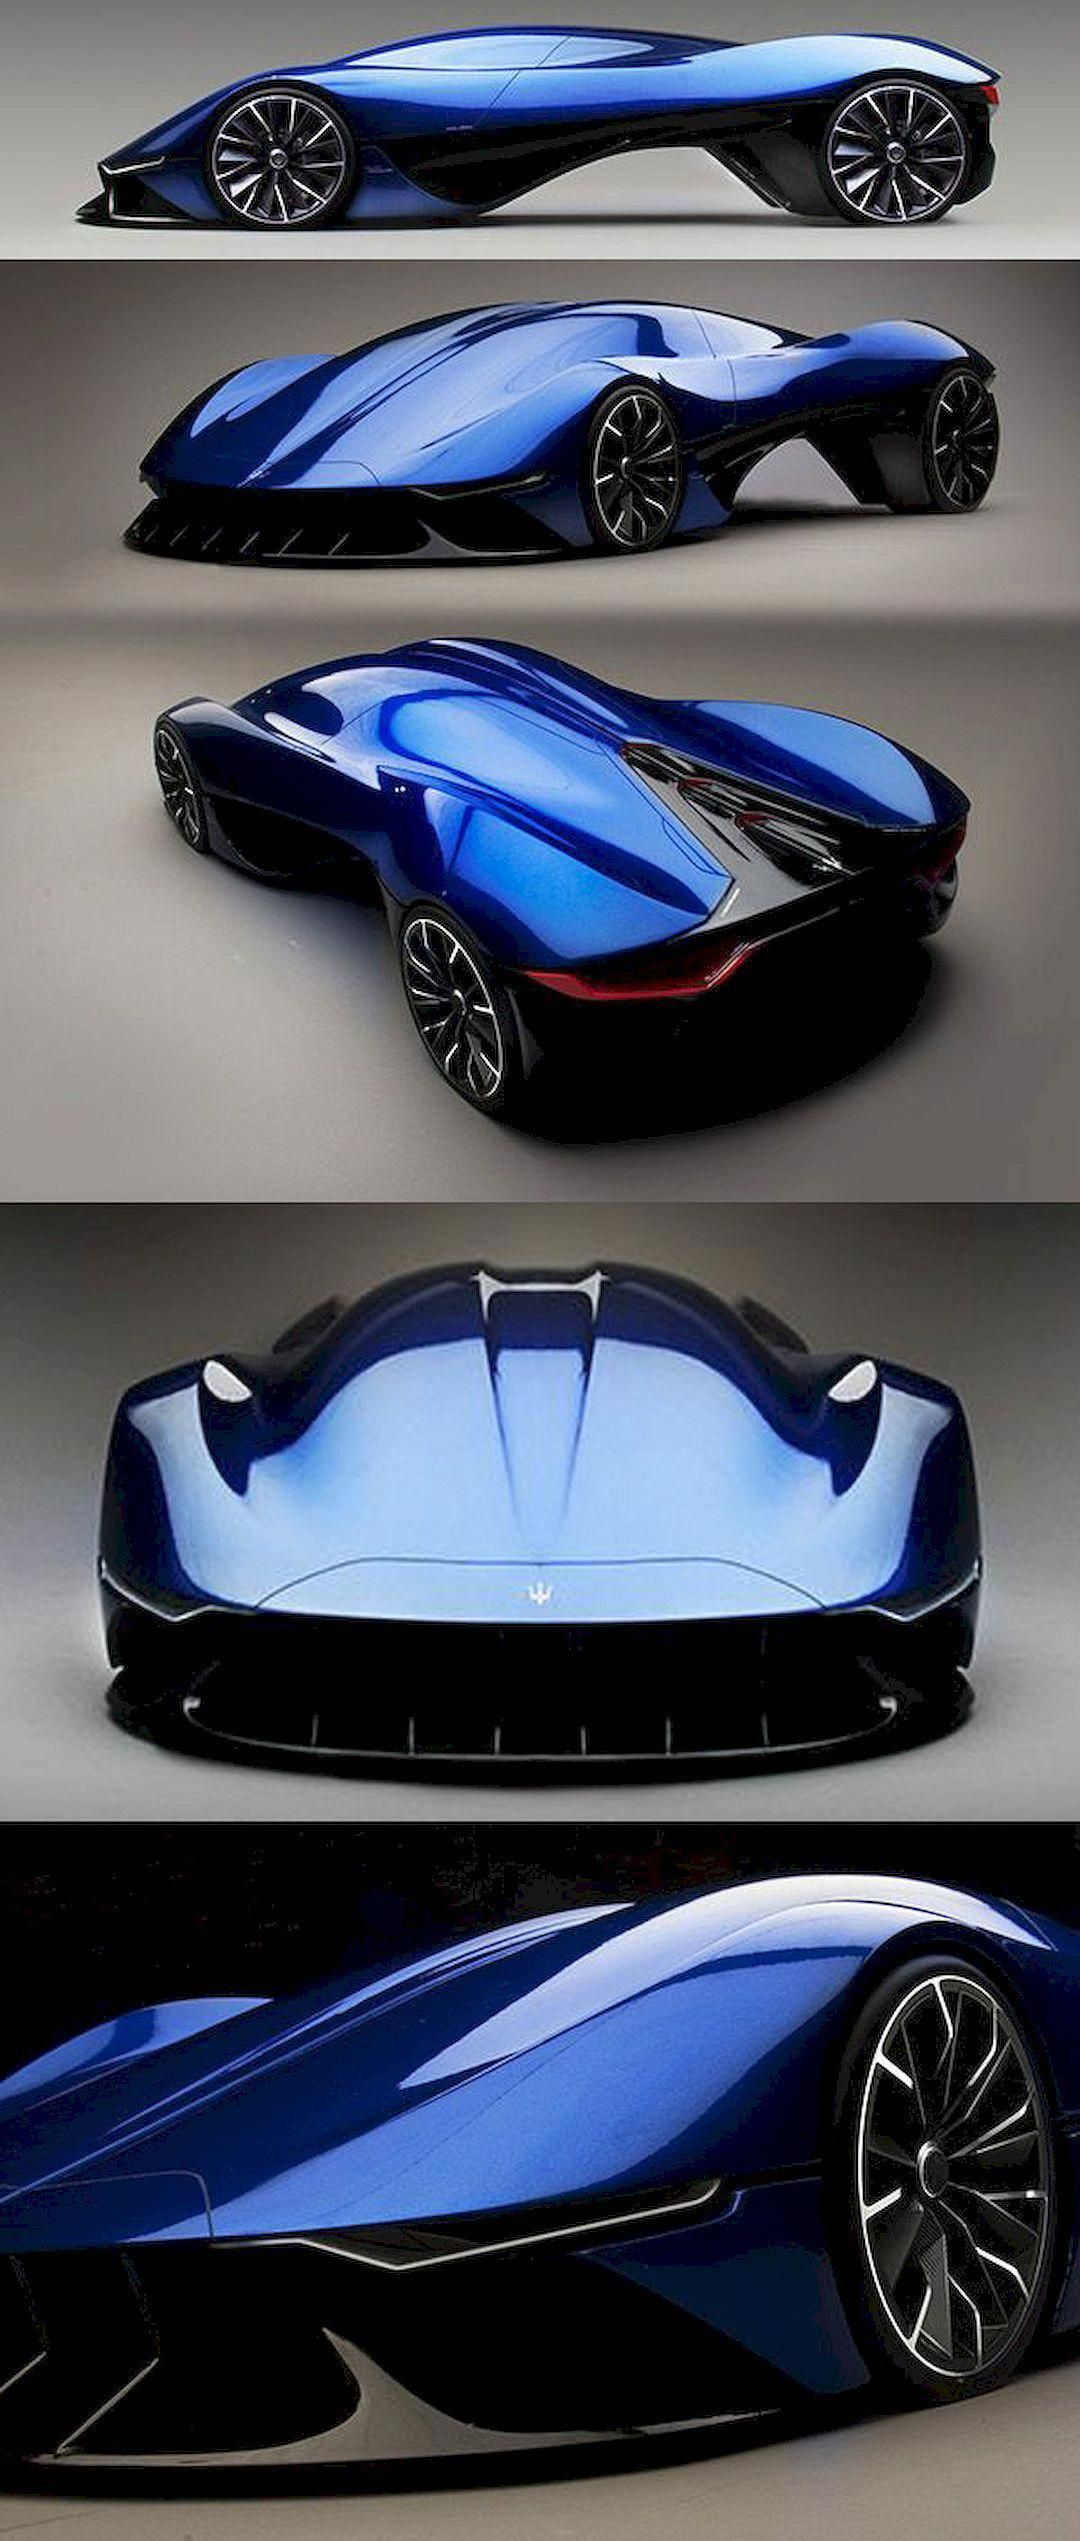 Super Cool Futuristic Car Designs 96 Photos Futuristic Cars Design Sports Cars Luxury Cool Sports Cars